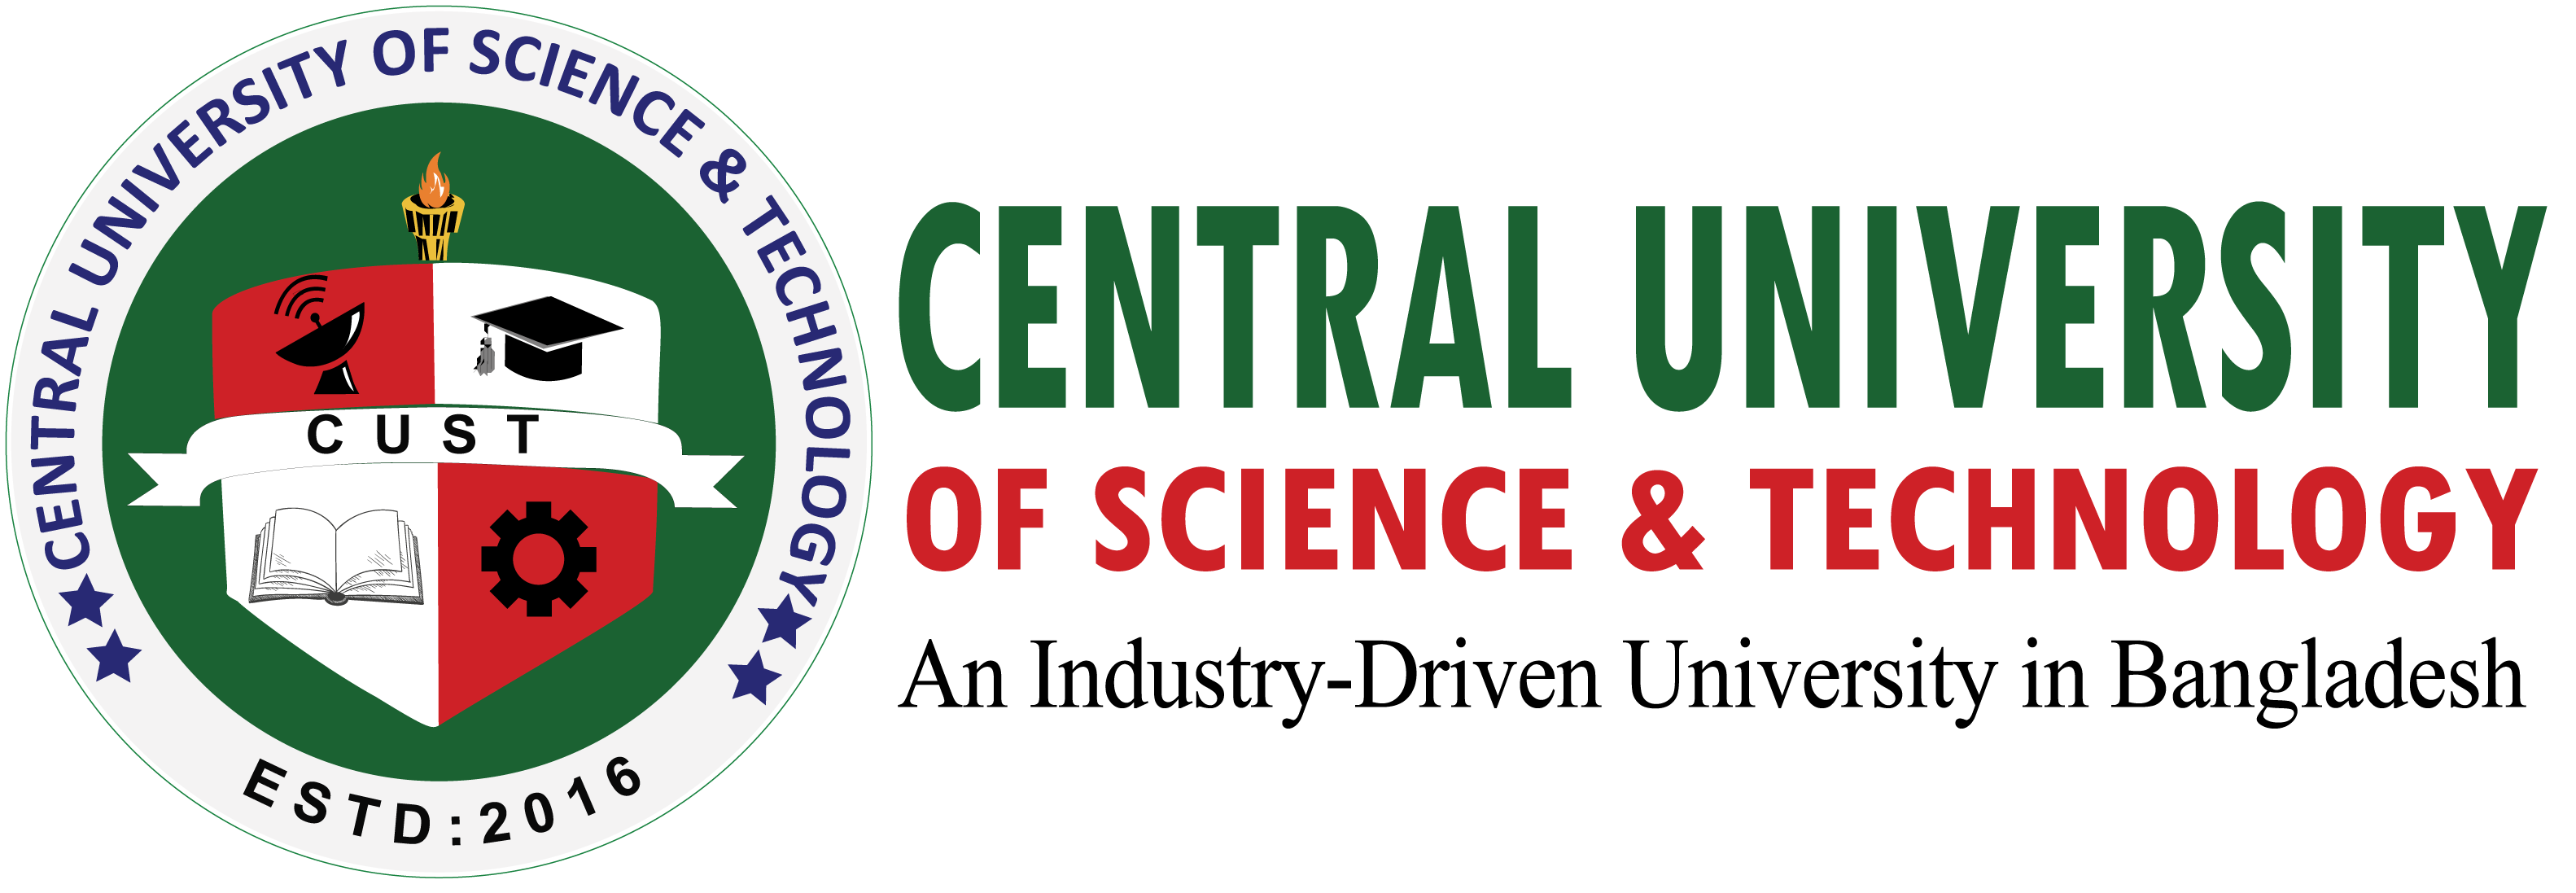 Undergraduate Programs - Central University of Science & Technology